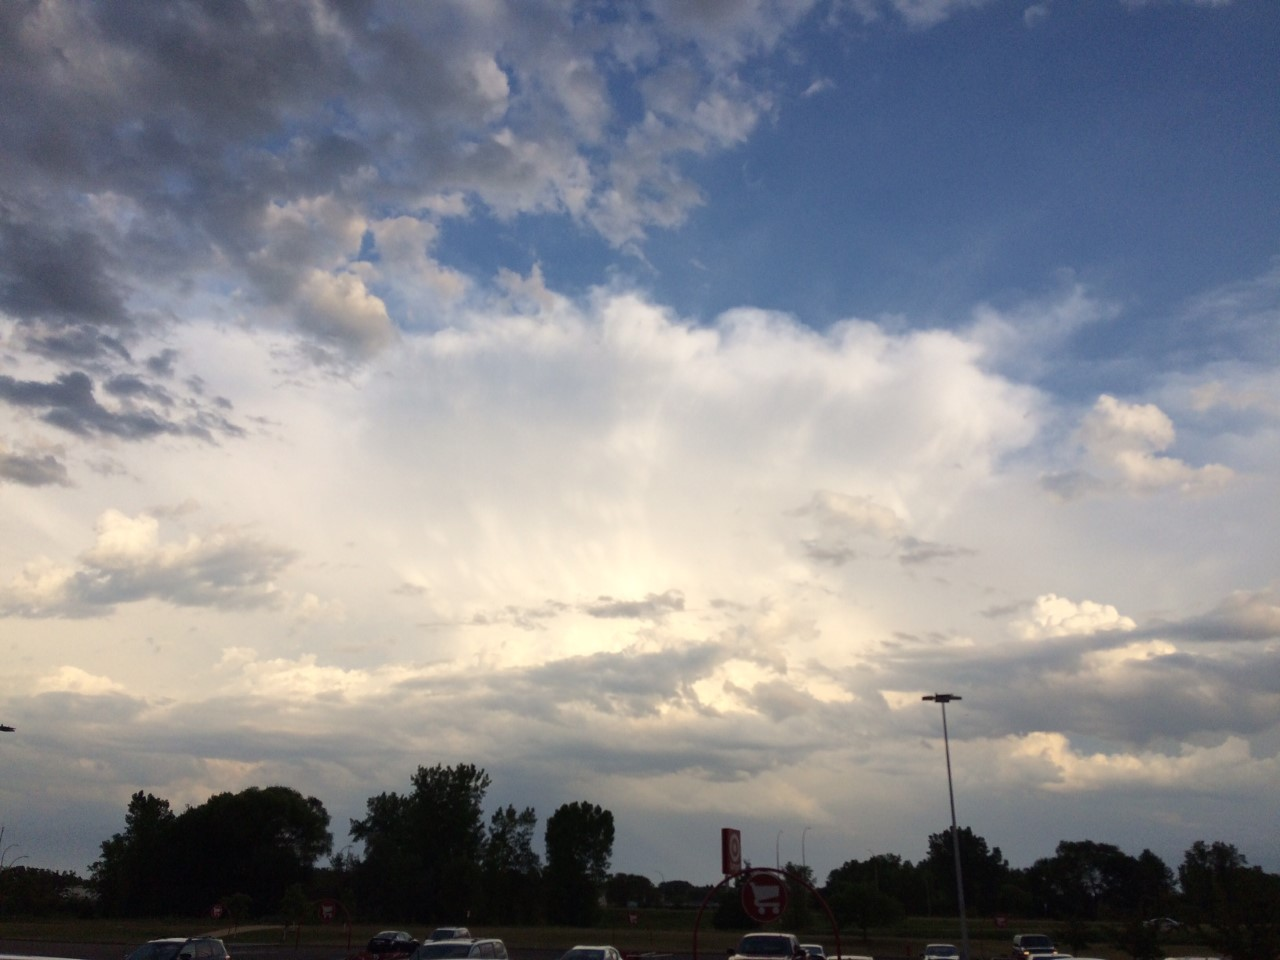 Looking Southeast at Thunderstorms